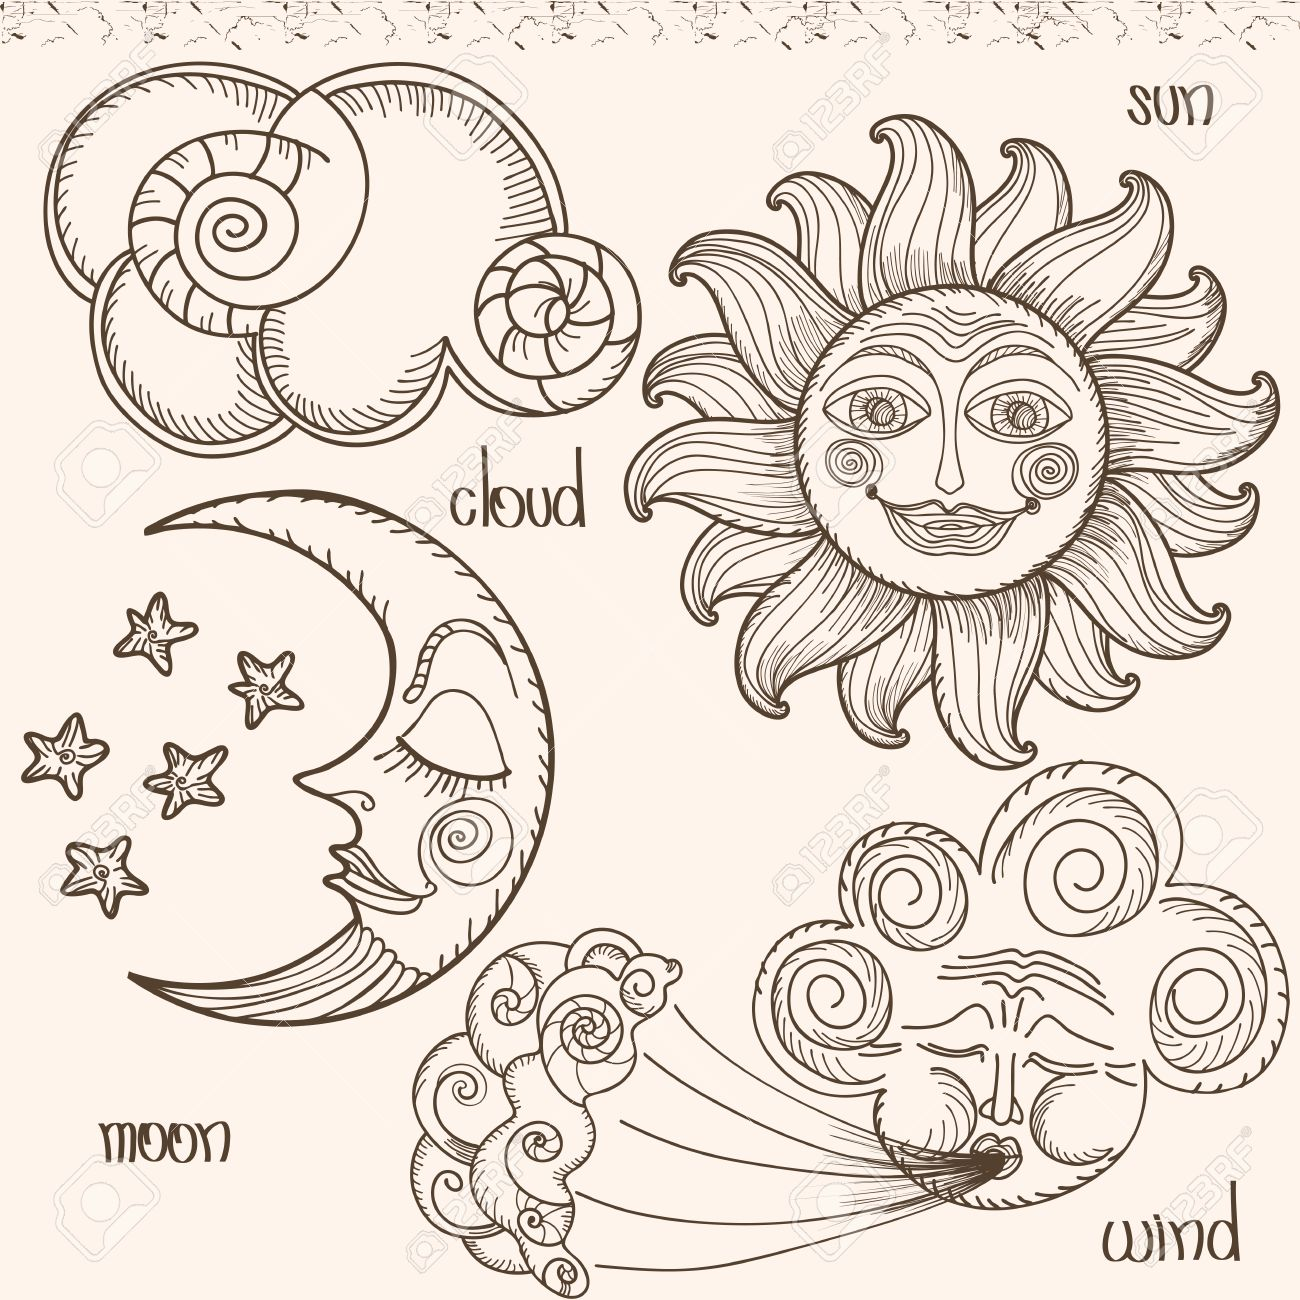 1300x1300 Image Of The Sun, Moon, Wind And Clouds. Hand Drawing. Imitation